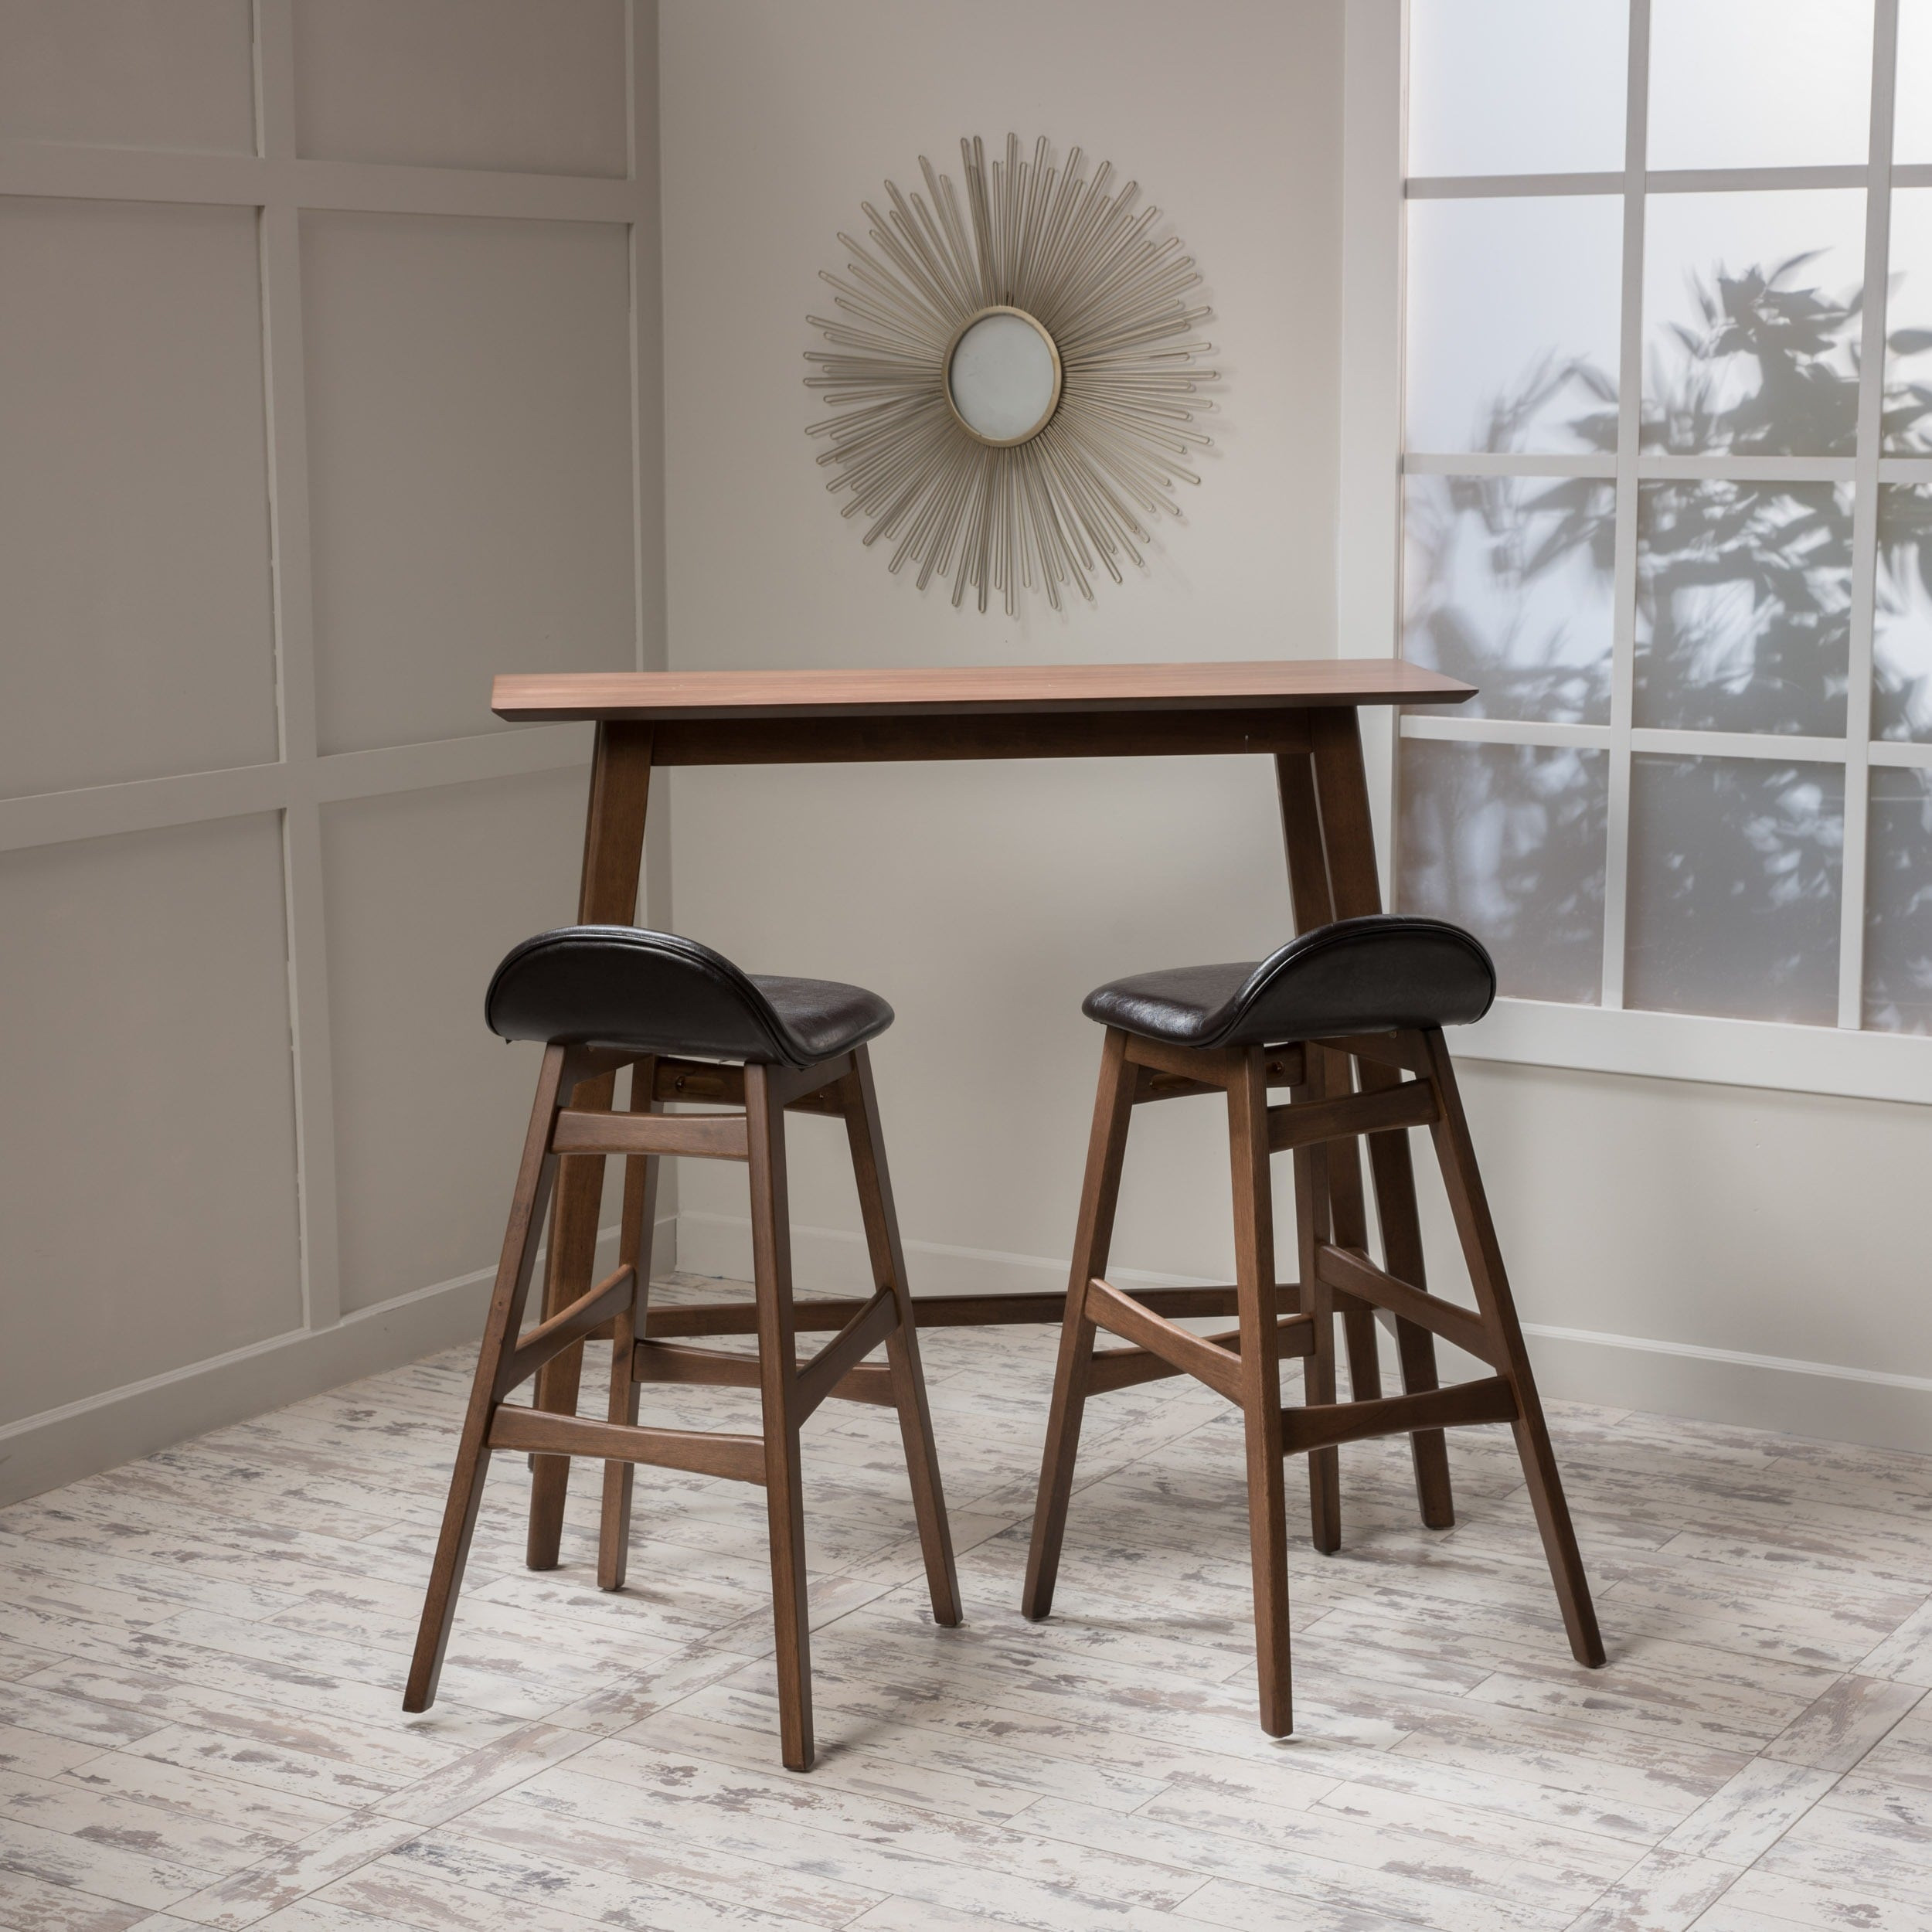 Moria Wood Bar Stool And Table Set By Christopher Knight Home